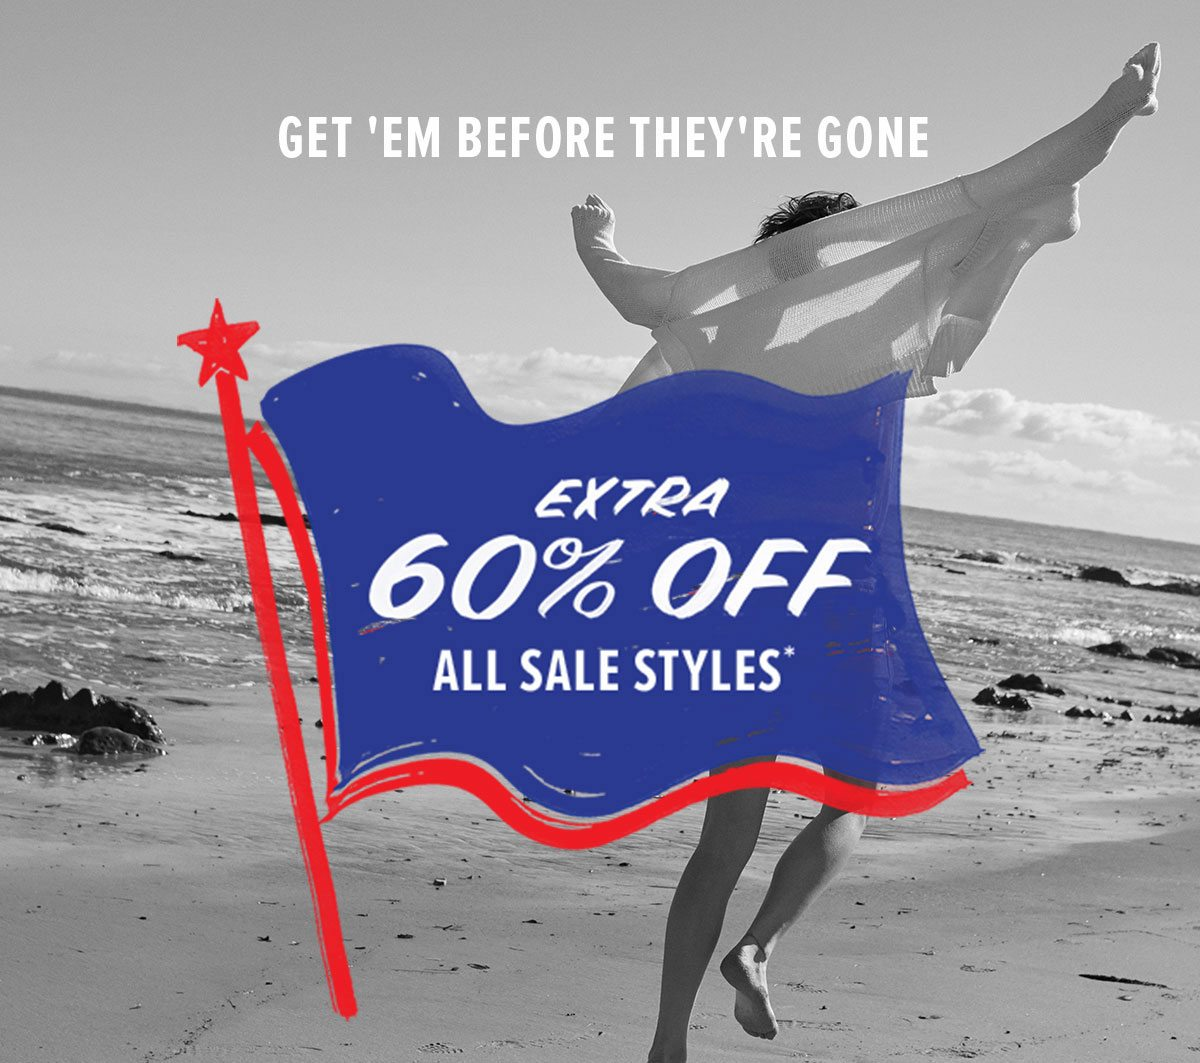 Extra 60% Off All Sale Styles